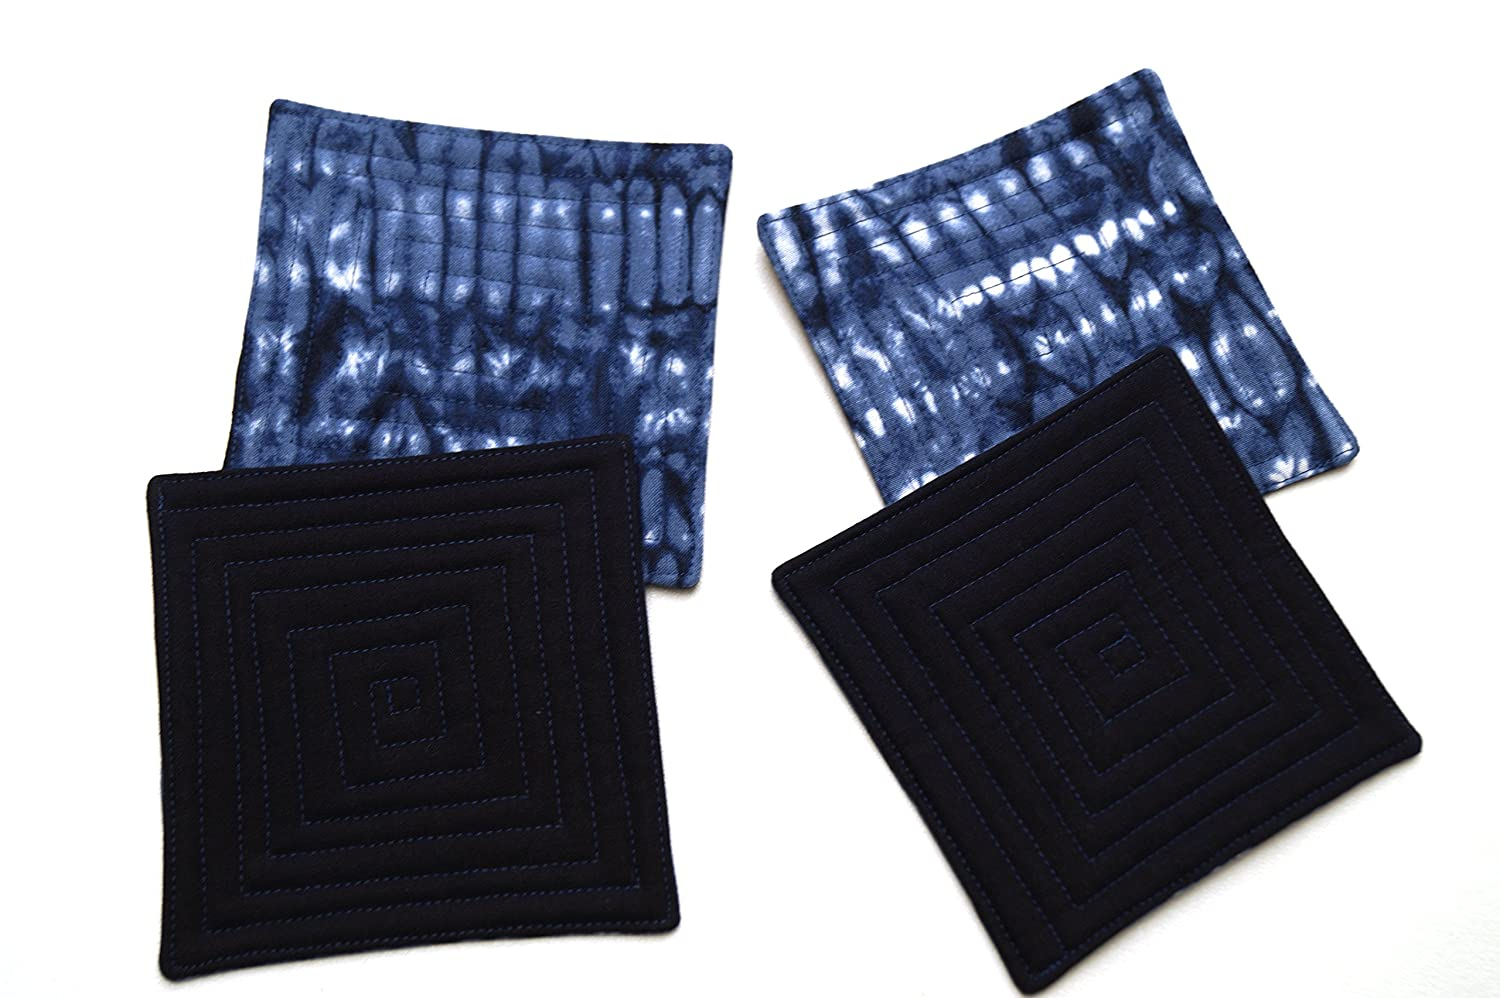 Indigo Blue Shibori Fabric Coasters Set